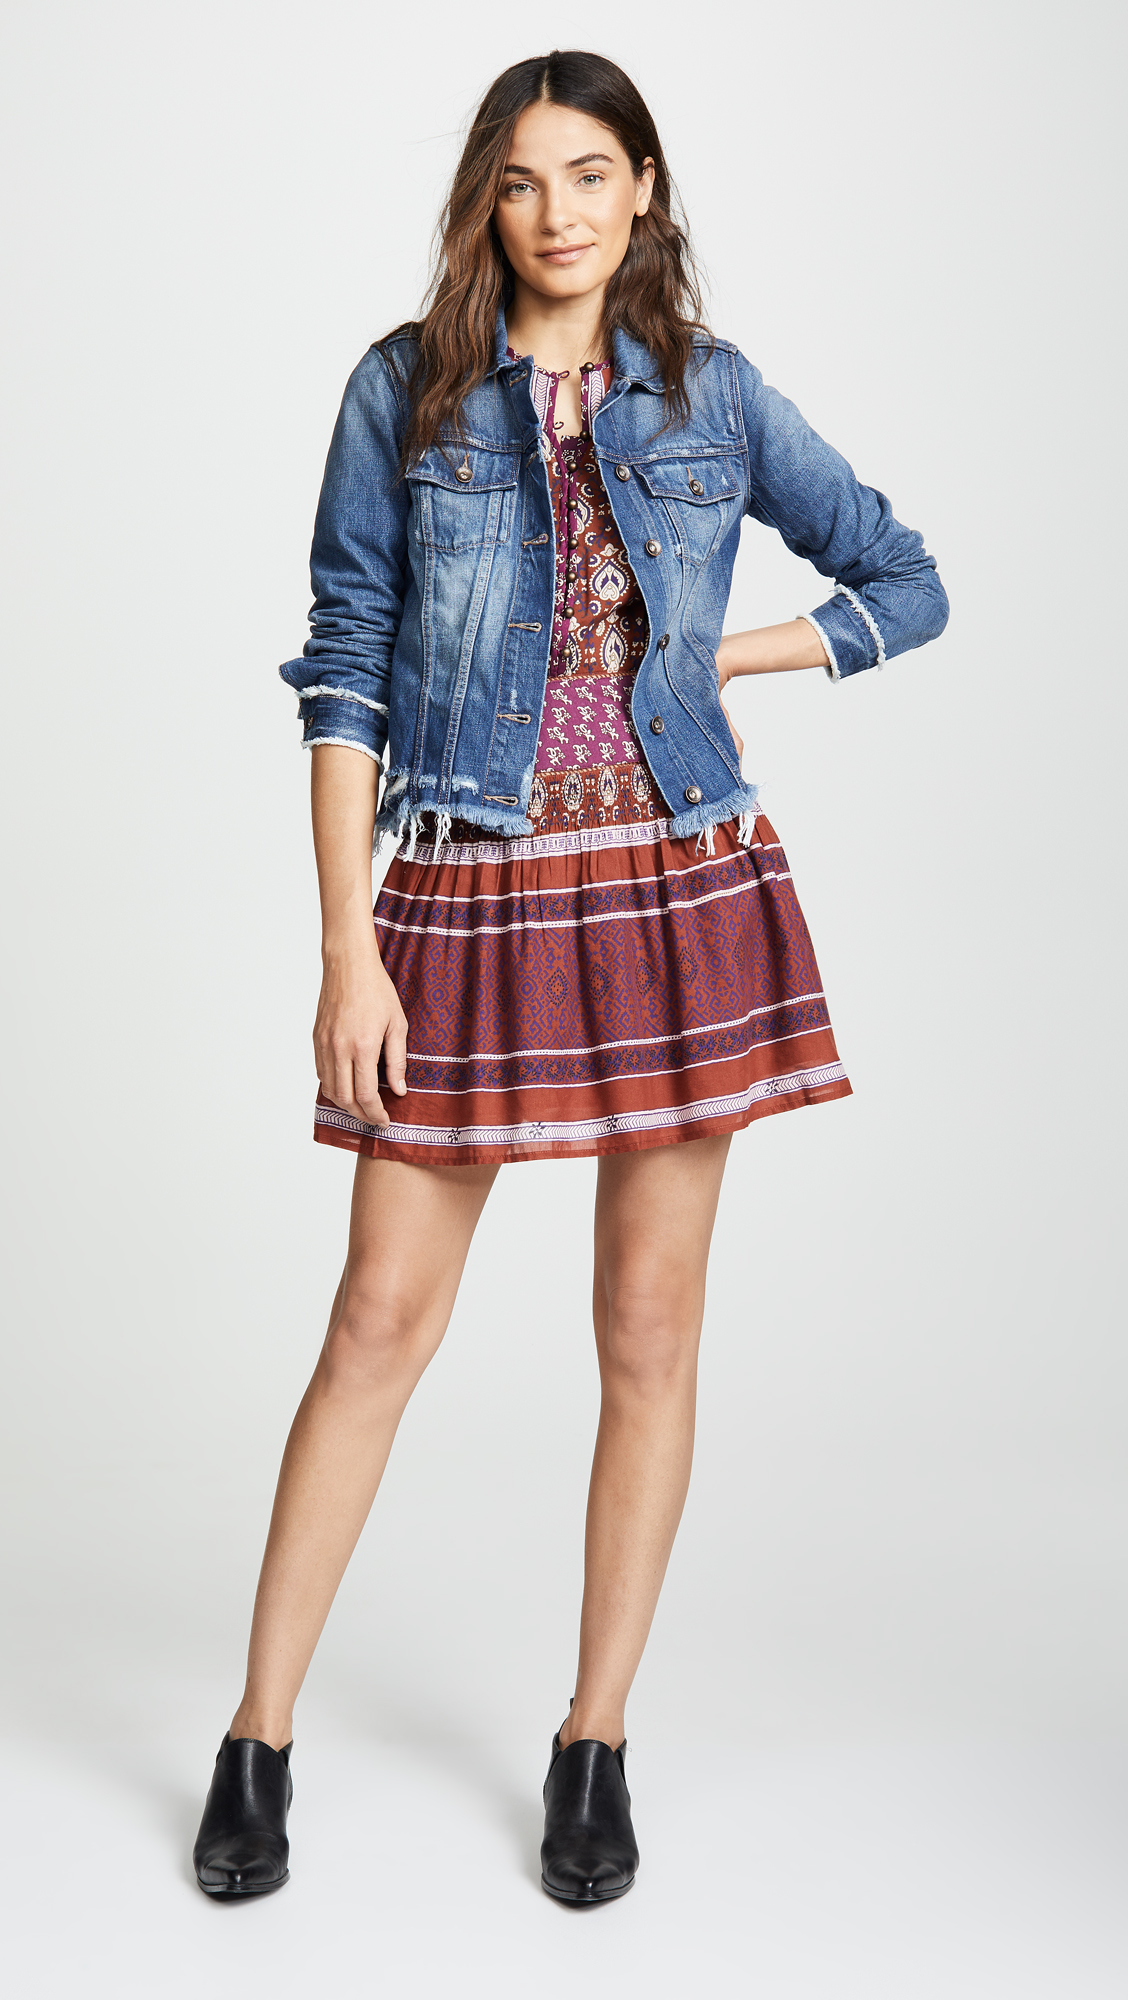 687ddb7bfe77 PAIGE Rowan Denim Jacket | SHOPBOP